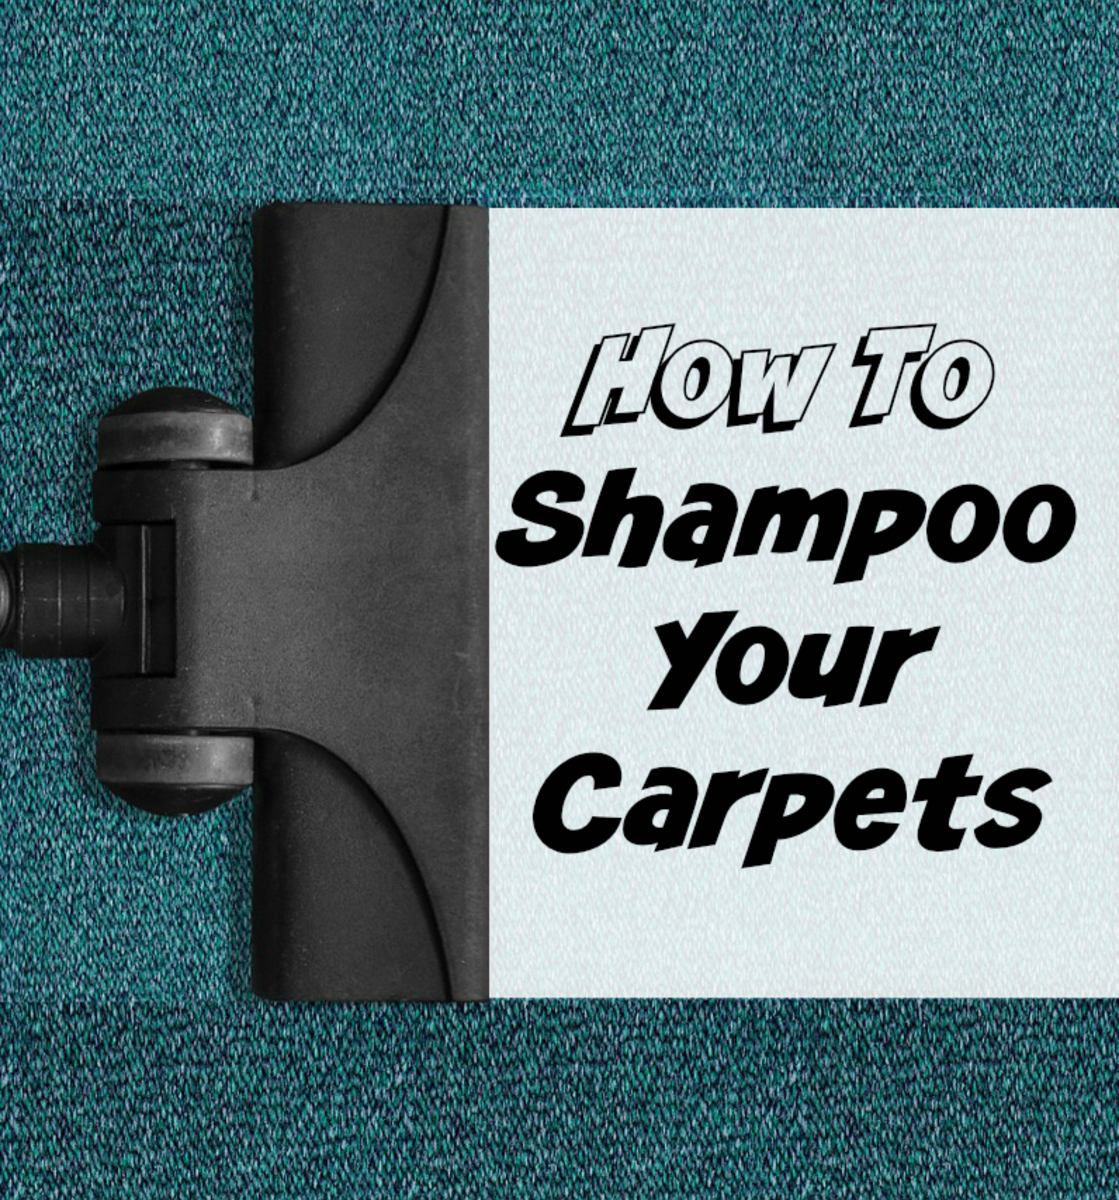 Shampooing the carpet is not difficult, just allow some time